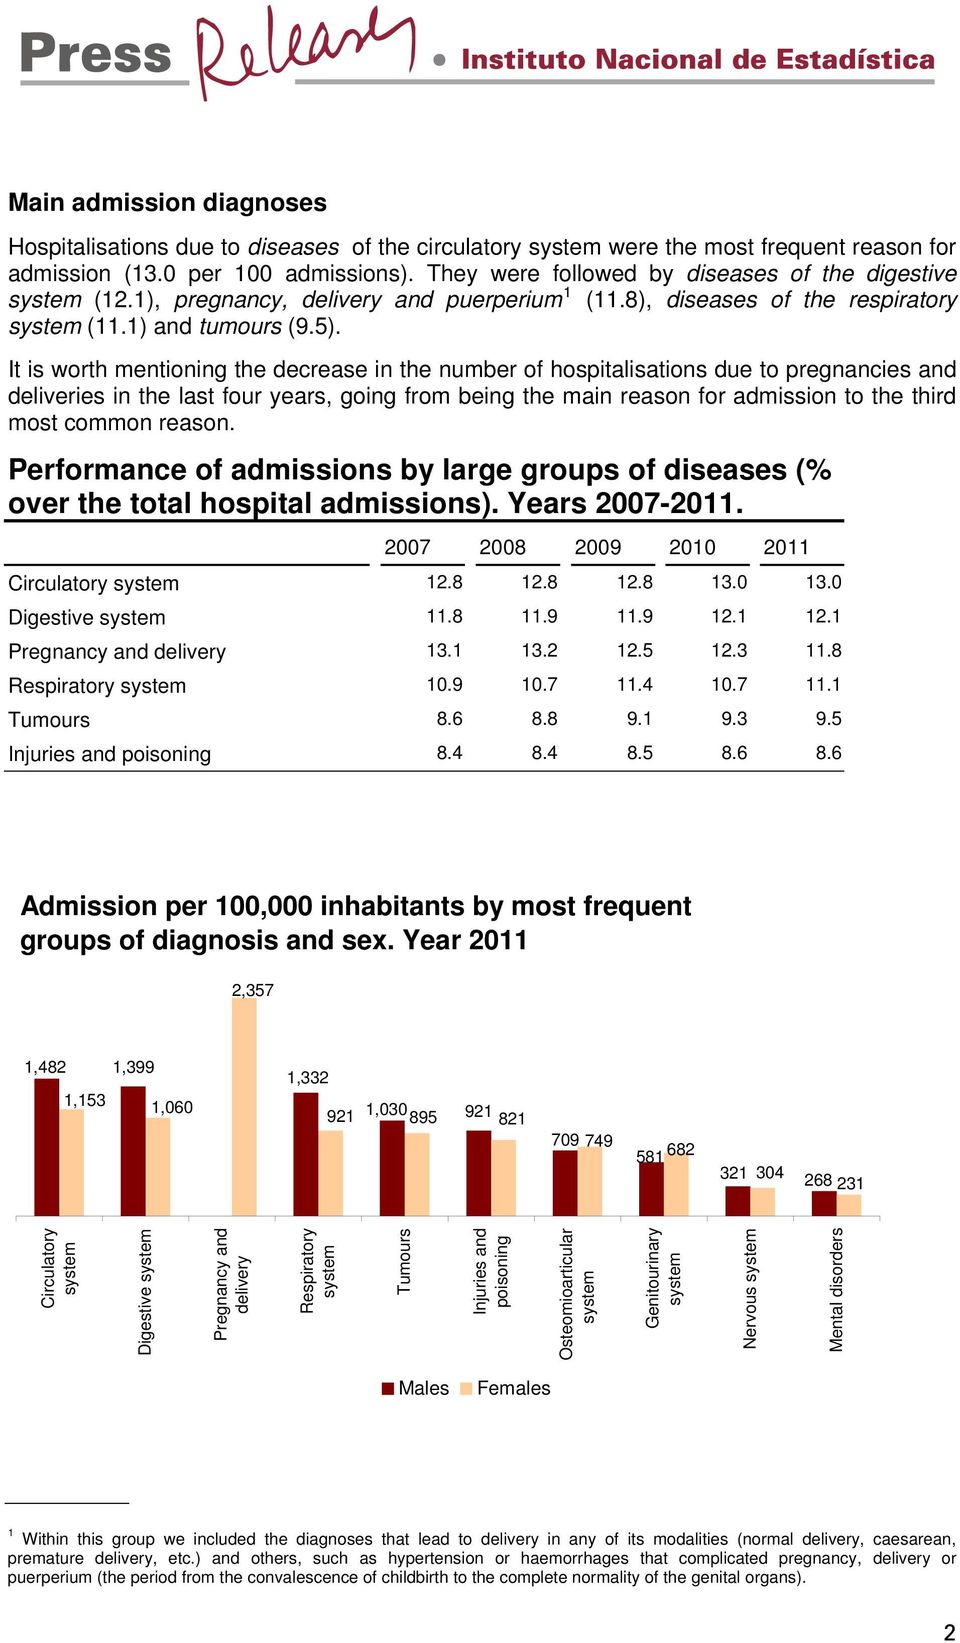 It is worth mentioning the decrease in the number of hospitalisations due to pregnancies and deliveries in the last four years, going from being the main reason for admission to the third most common